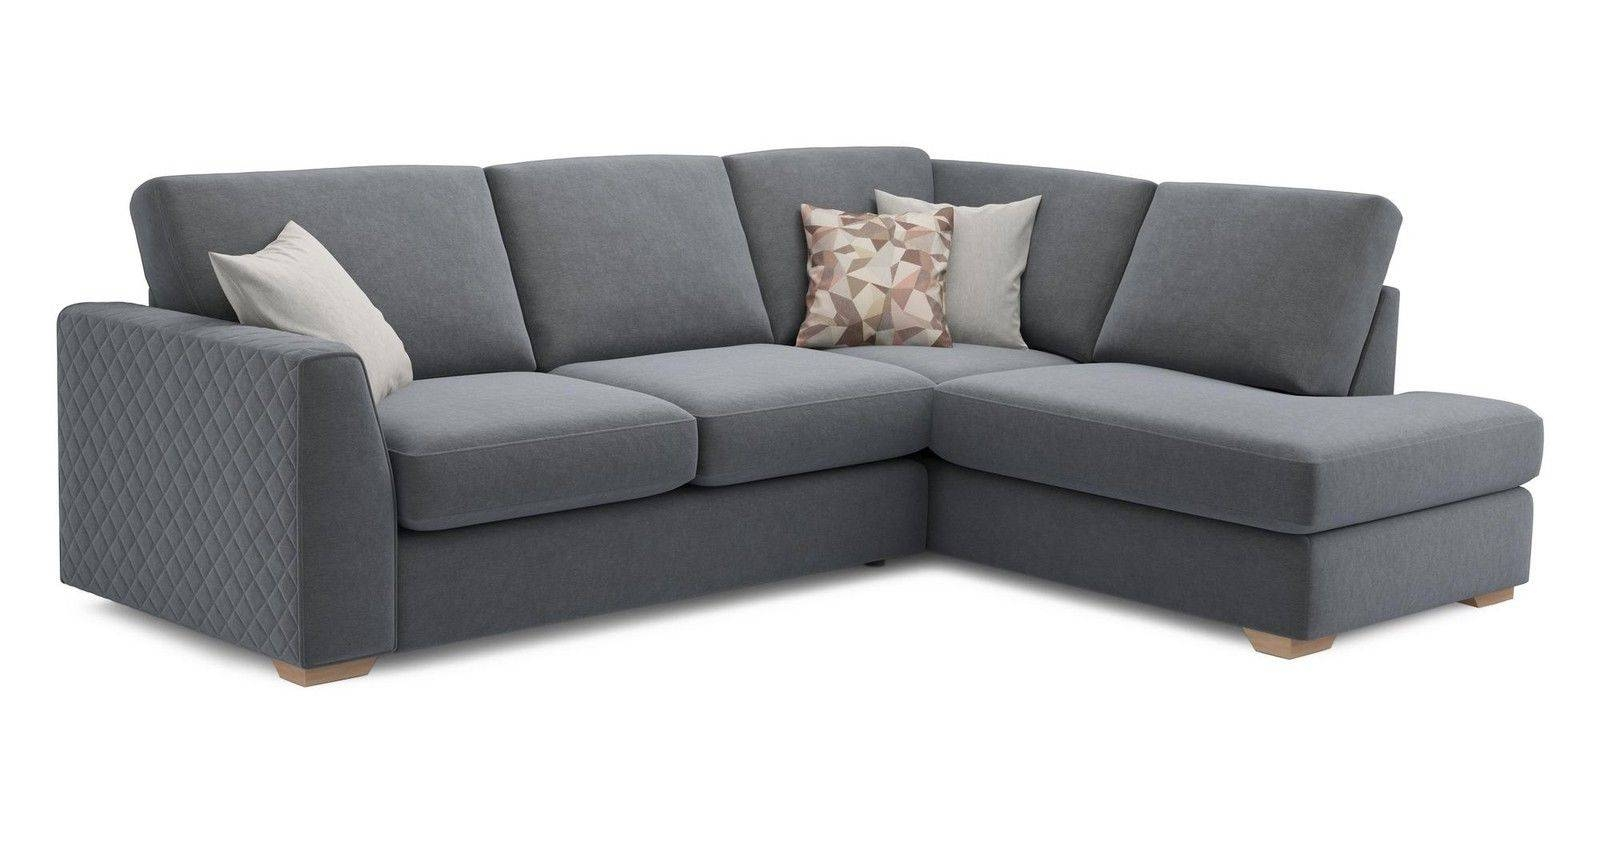 Sofa Bed Tesco - Leather Sectional Sofa with regard to Sofa Convertibles (Image 22 of 30)